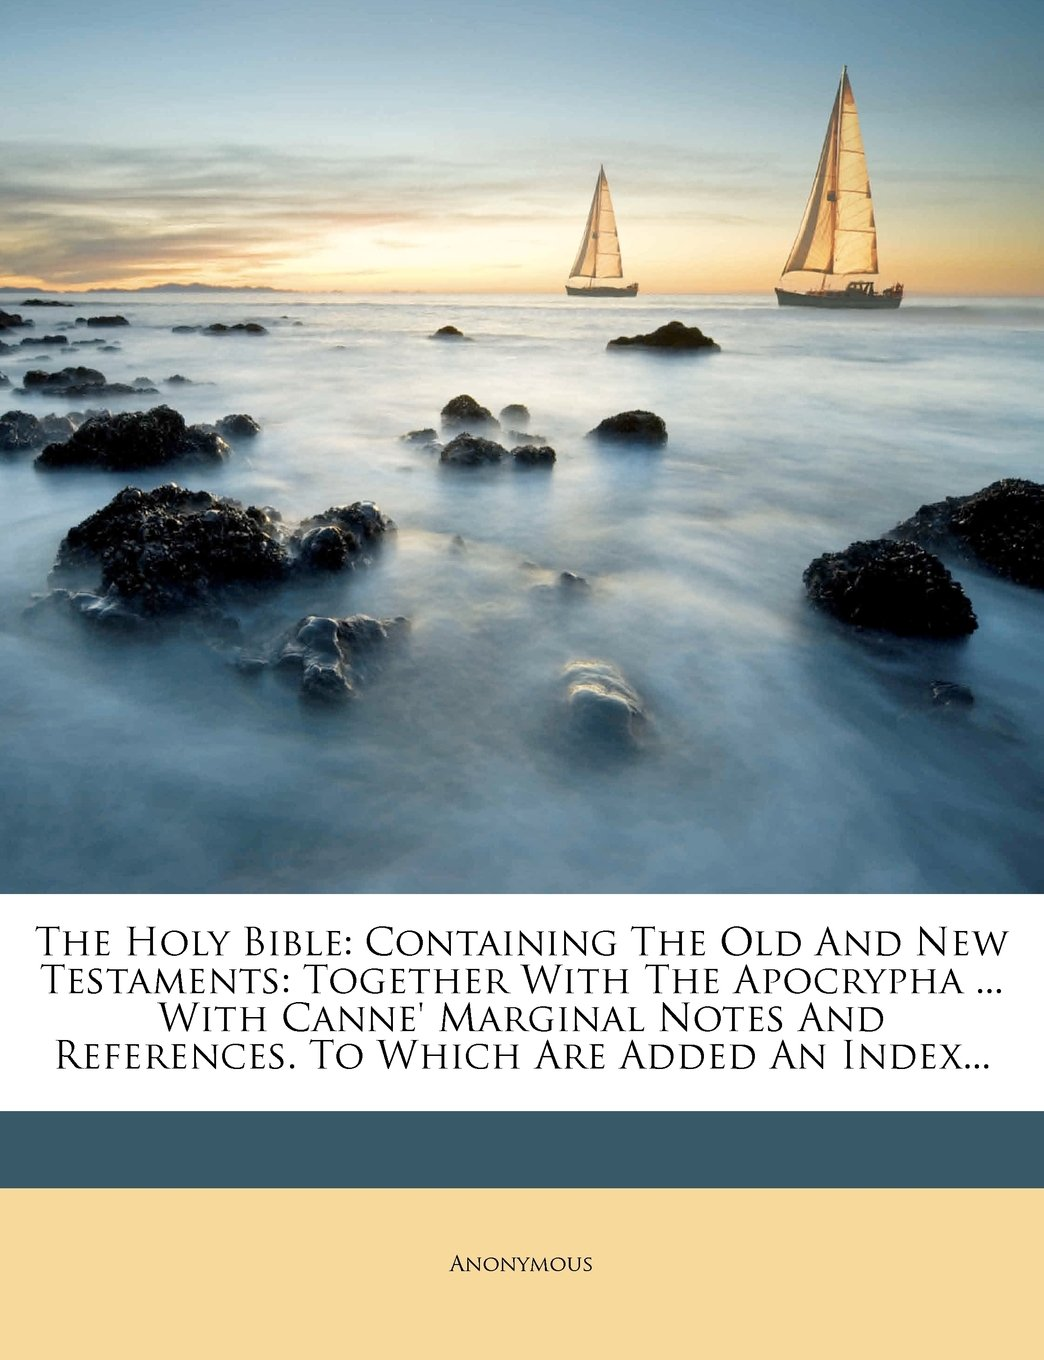 Download The Holy Bible: Containing The Old And New Testaments: Together With The Apocrypha ... With Canne' Marginal Notes And References. To Which Are Added An Index... PDF